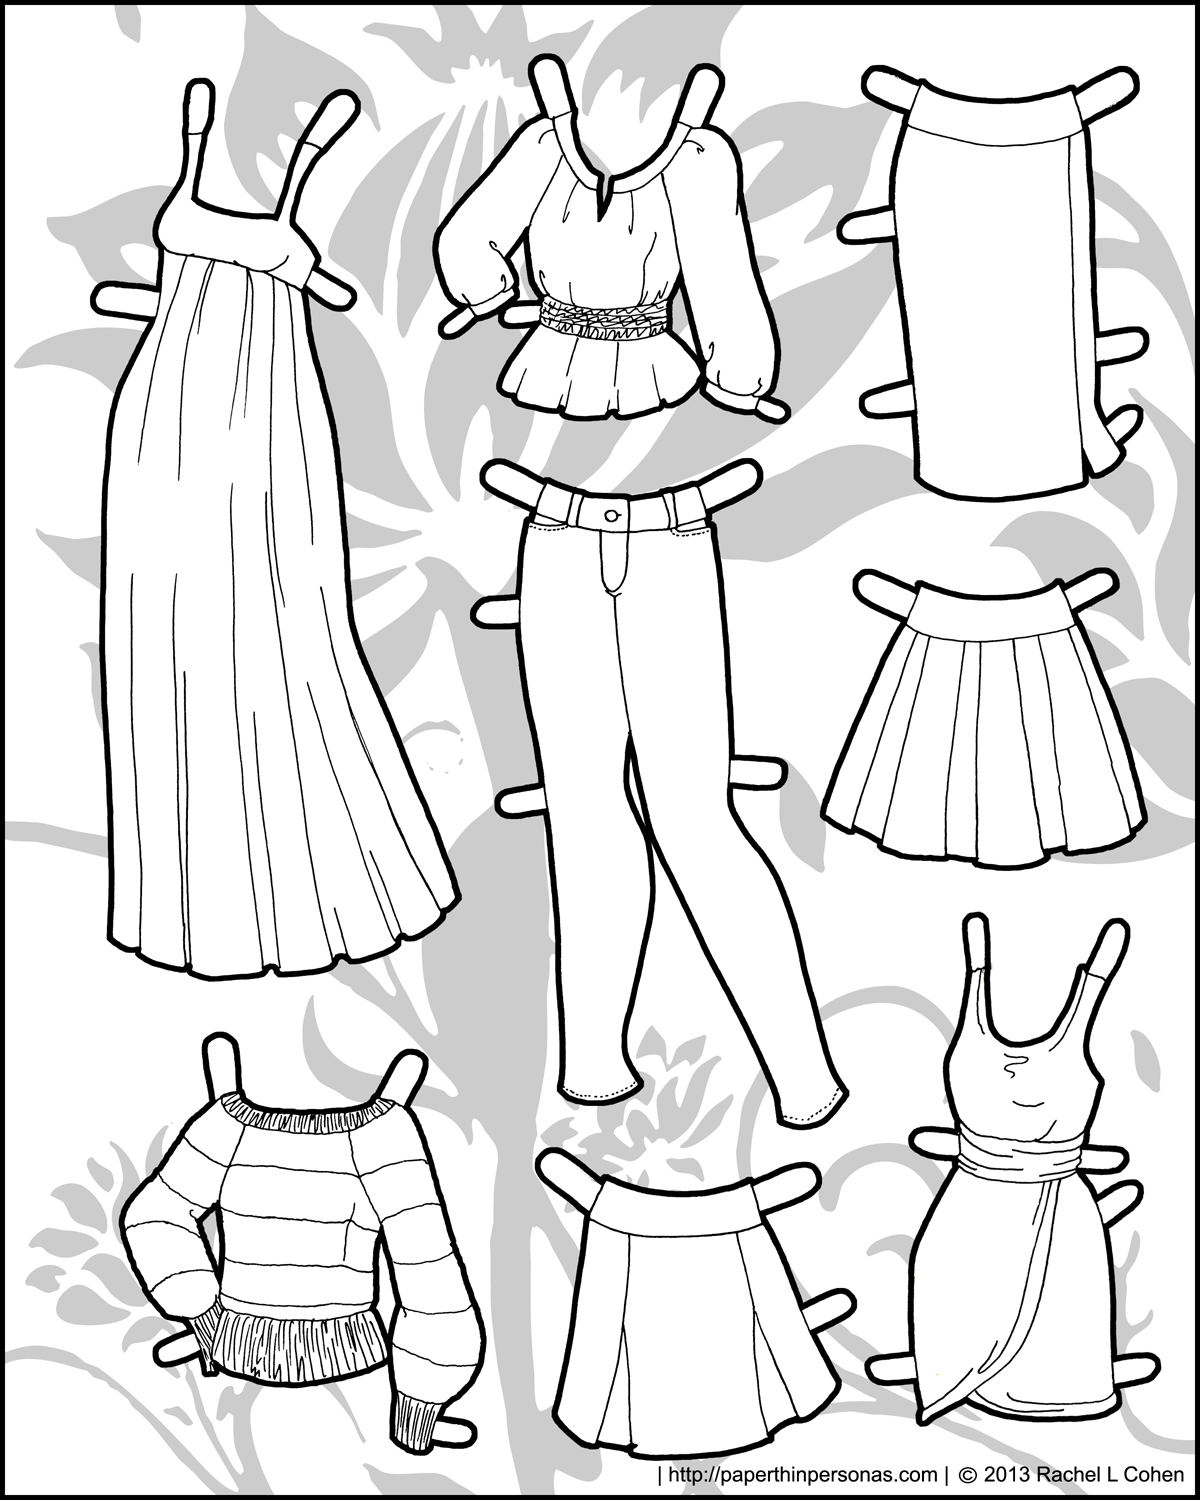 Coloring Pages Clothing: Paper Doll Clothes- Skinny Jeans And Peasant Tops